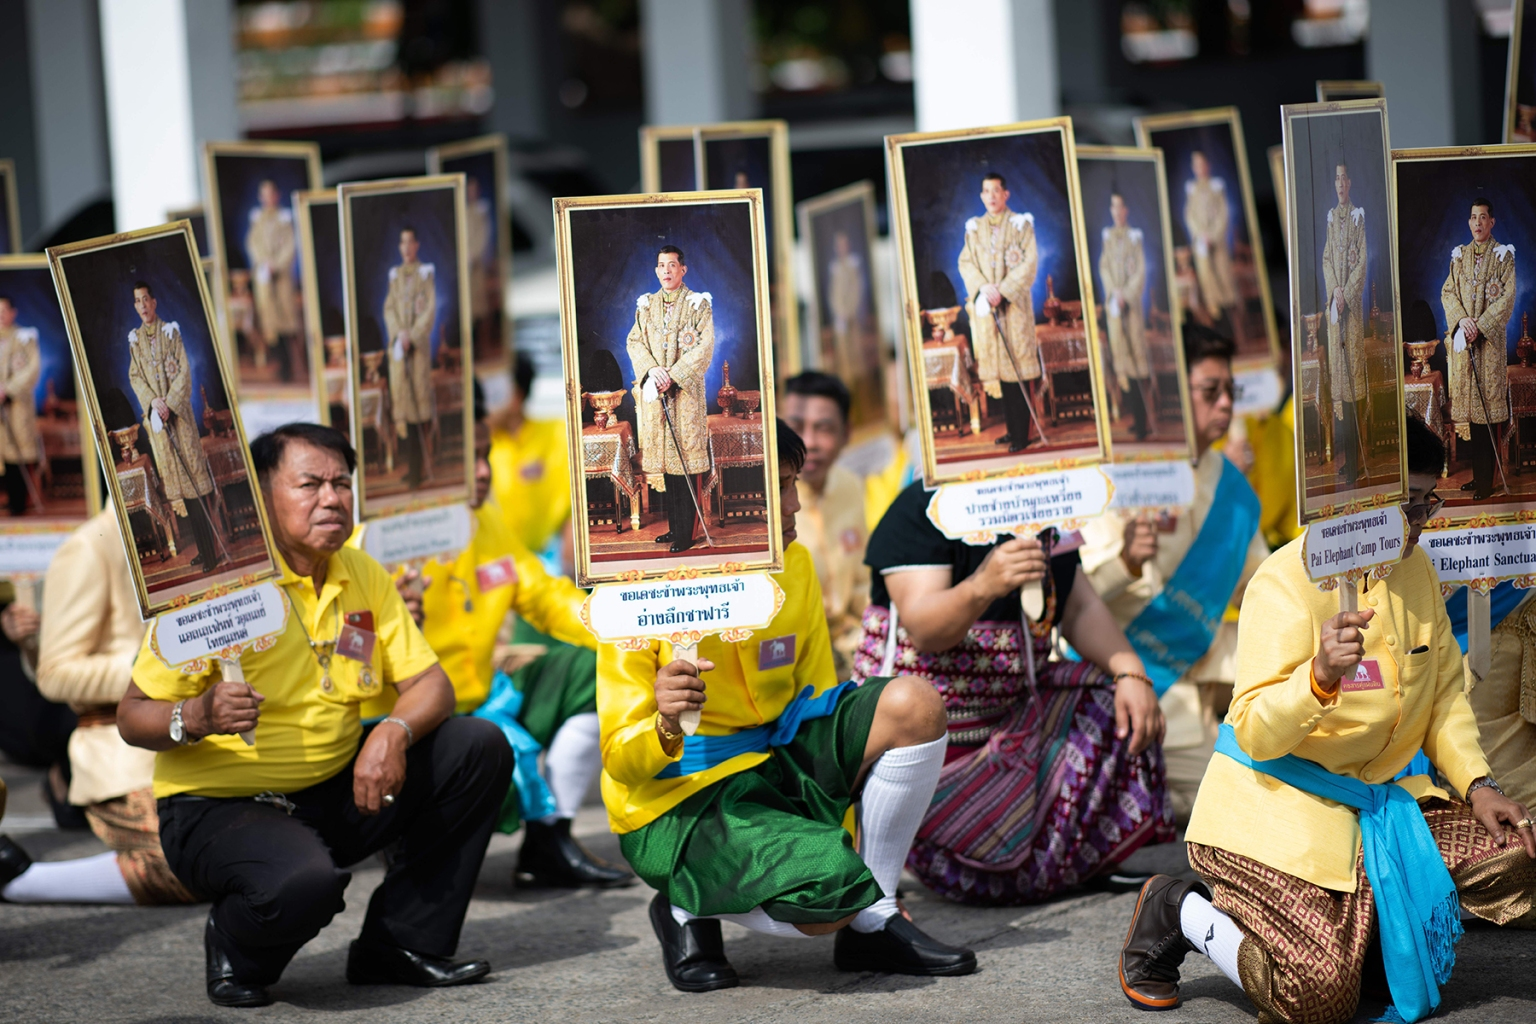 Well-wishers hold pictures of Thailand's King Maha Vajiralongkorn during a procession near the Grand Palace to pay respects to the King in Bangkok on May 7. JEWEL SAMAD/AFP/Getty Images